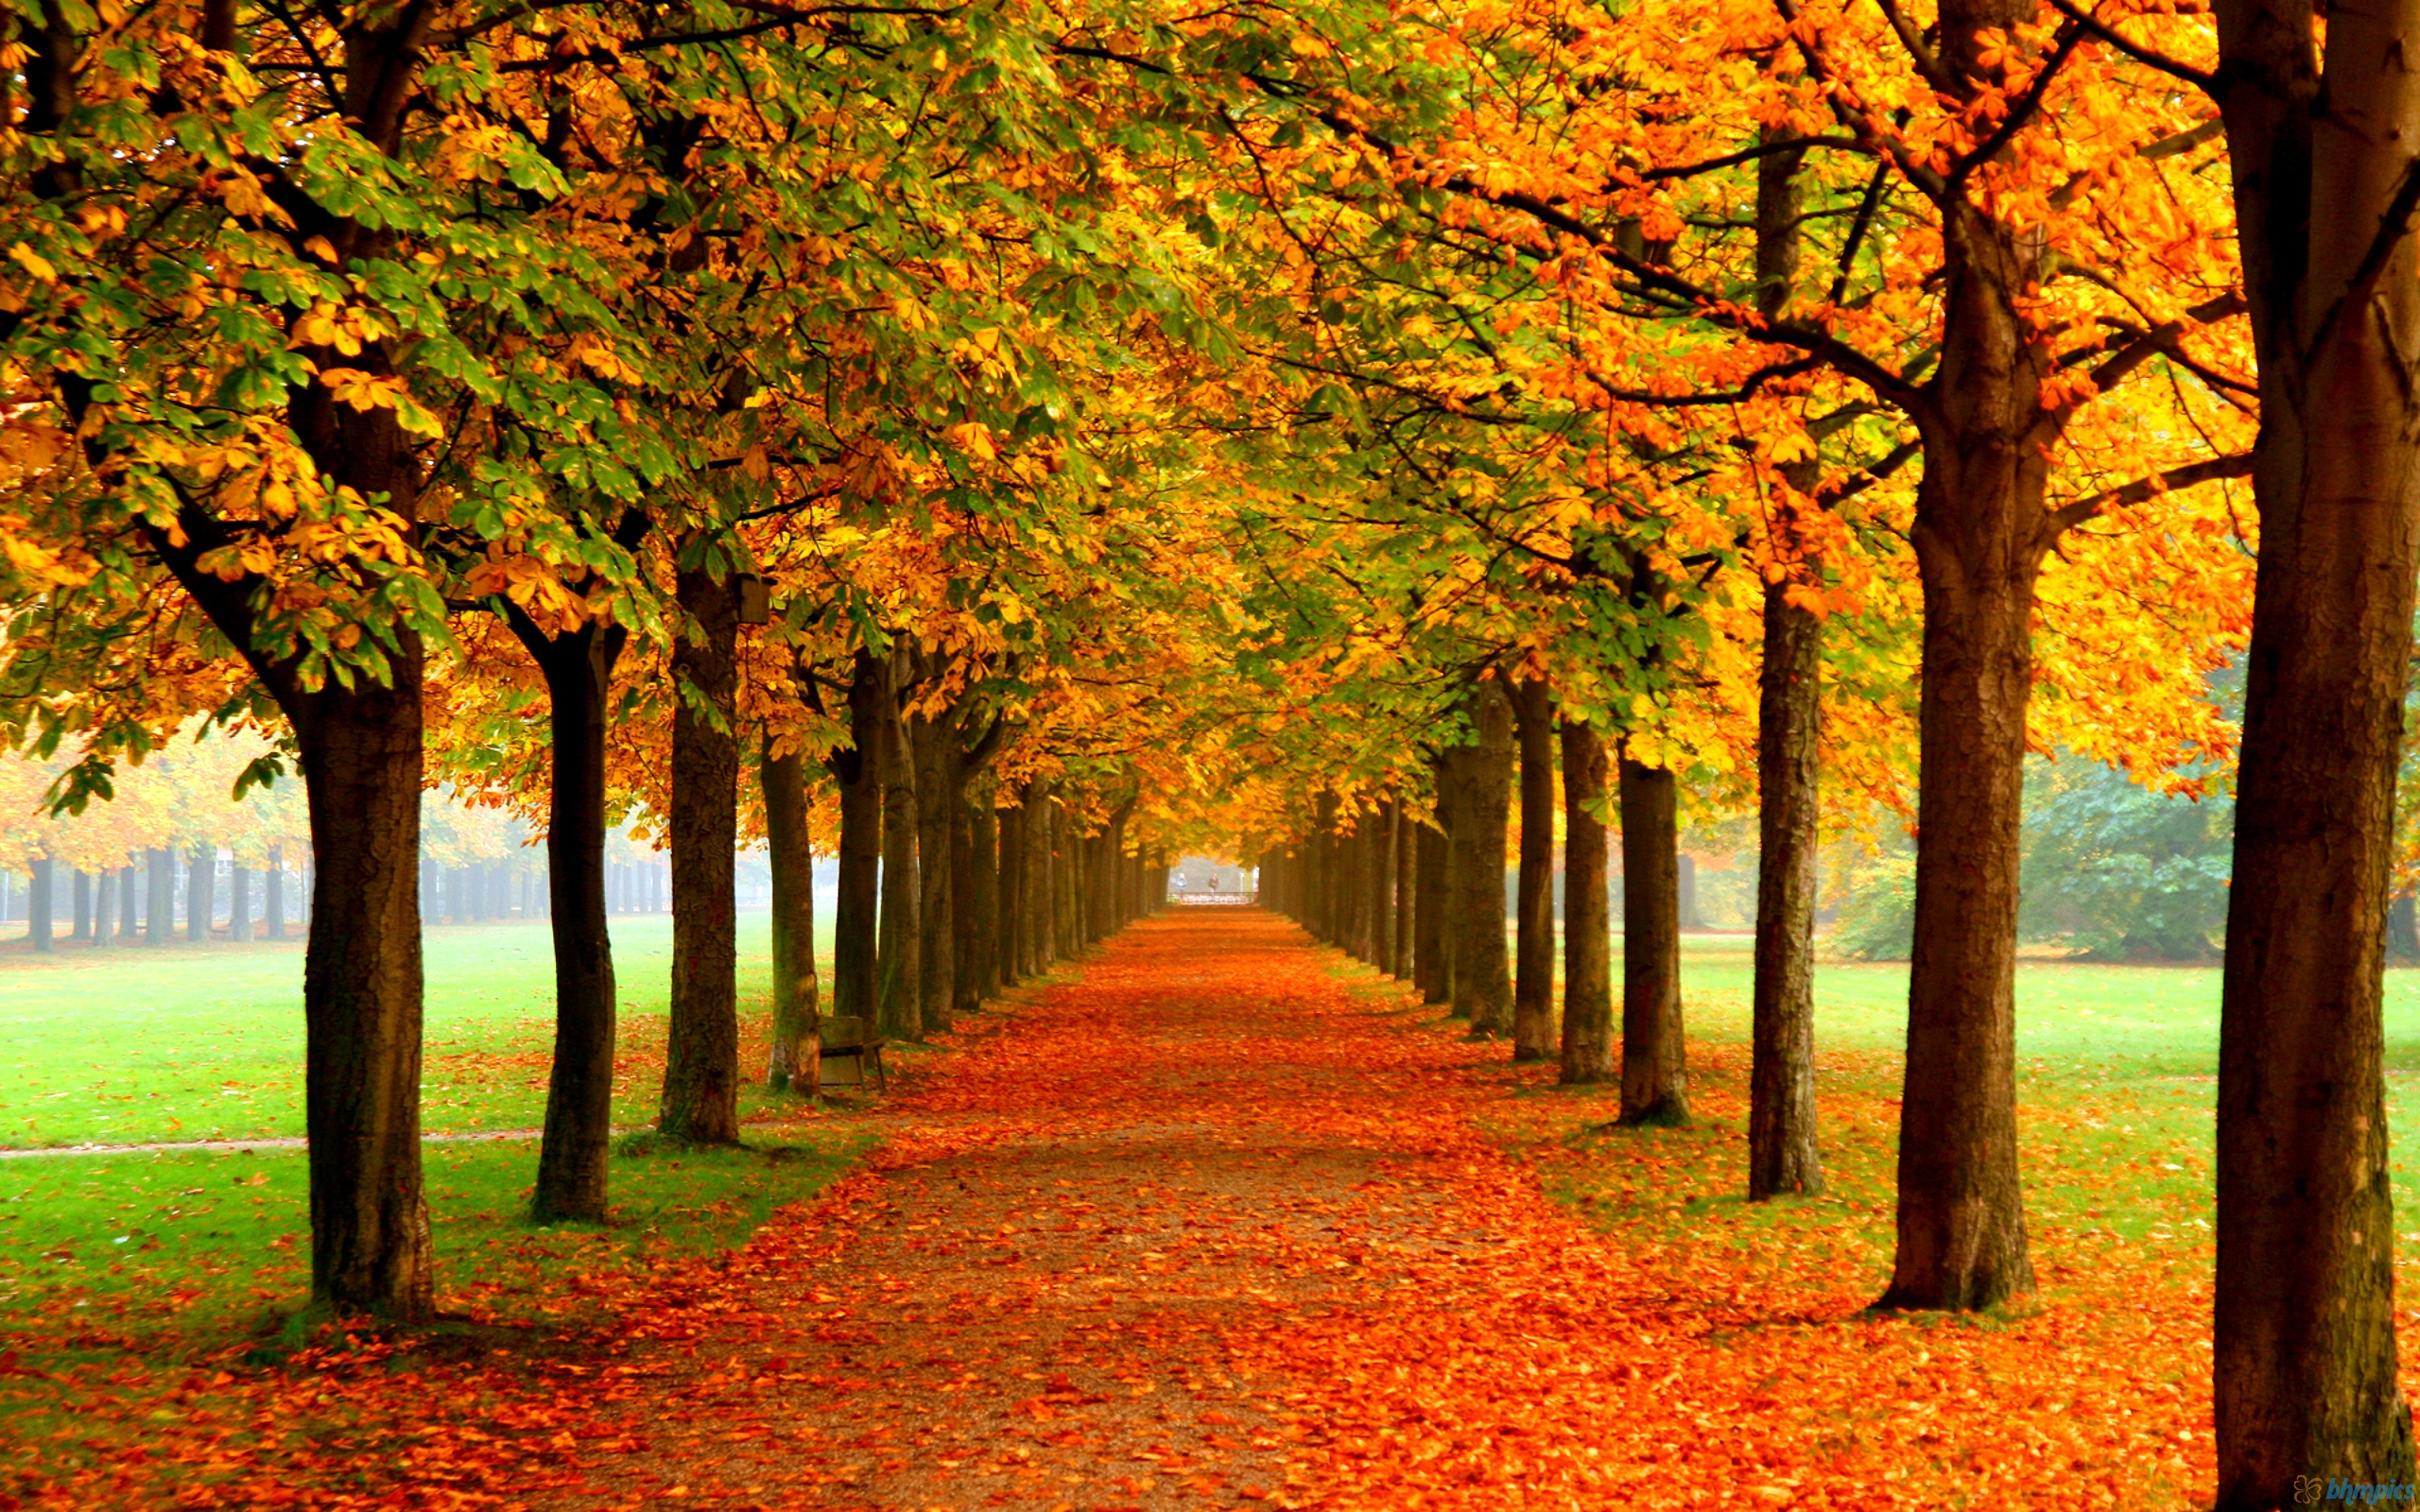 Image Copyright http://www.speechbuilders.org/autumn-leaves/